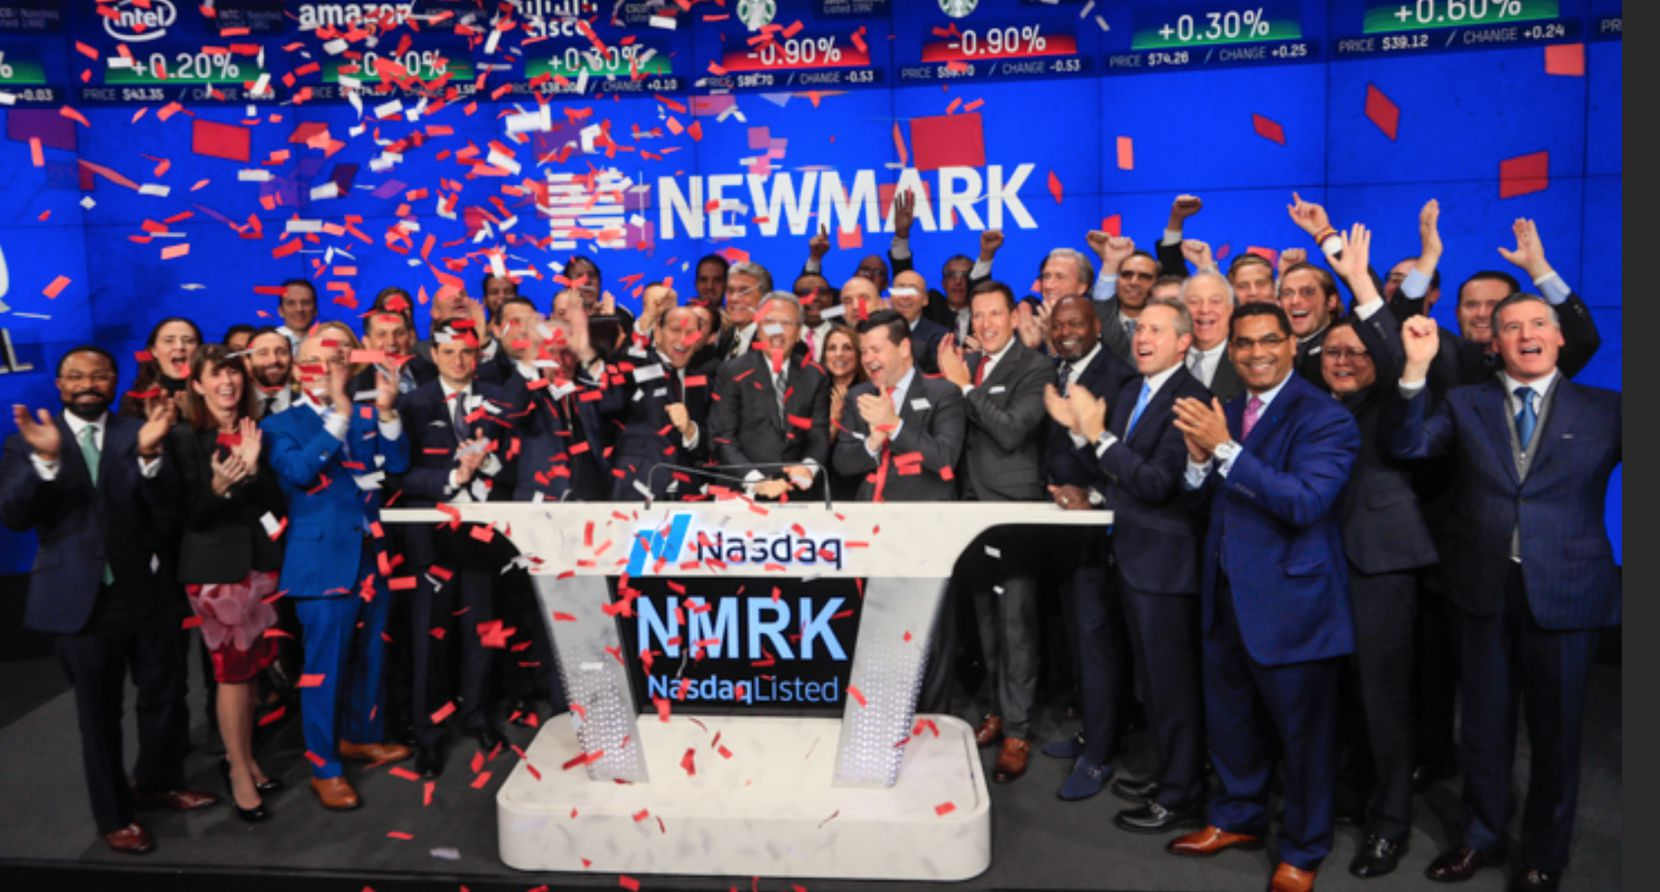 Emmitt Smith (front row, third from right) was on hand in New York last month when Newmark Group had its first public stock offering.